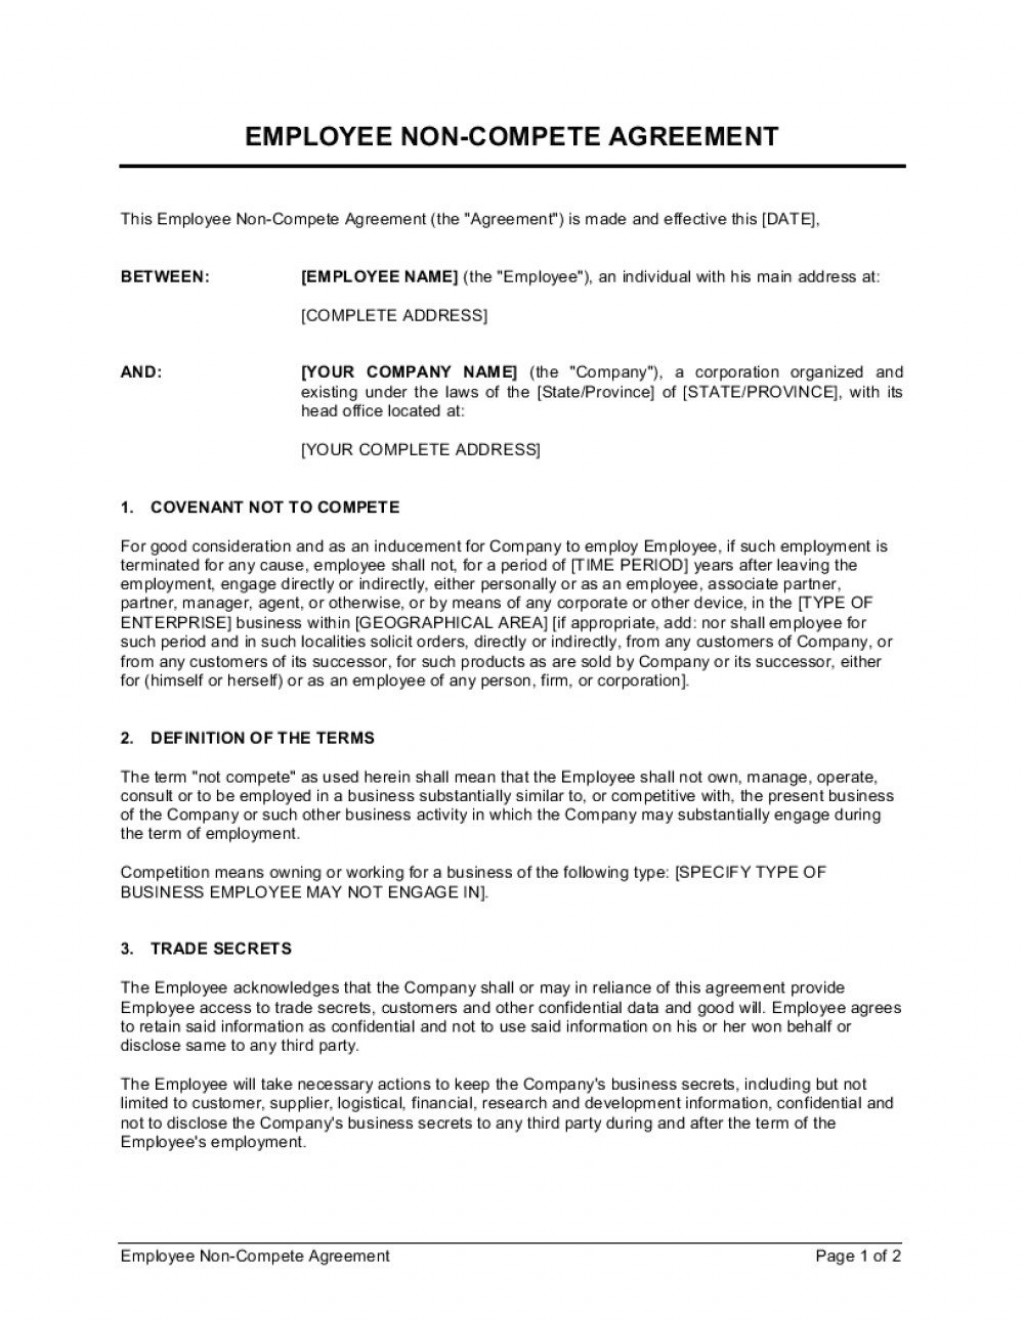 001 Impressive Employee Non Compete Agreement Template Concept  Free Confidentiality Non-compete DisclosureLarge